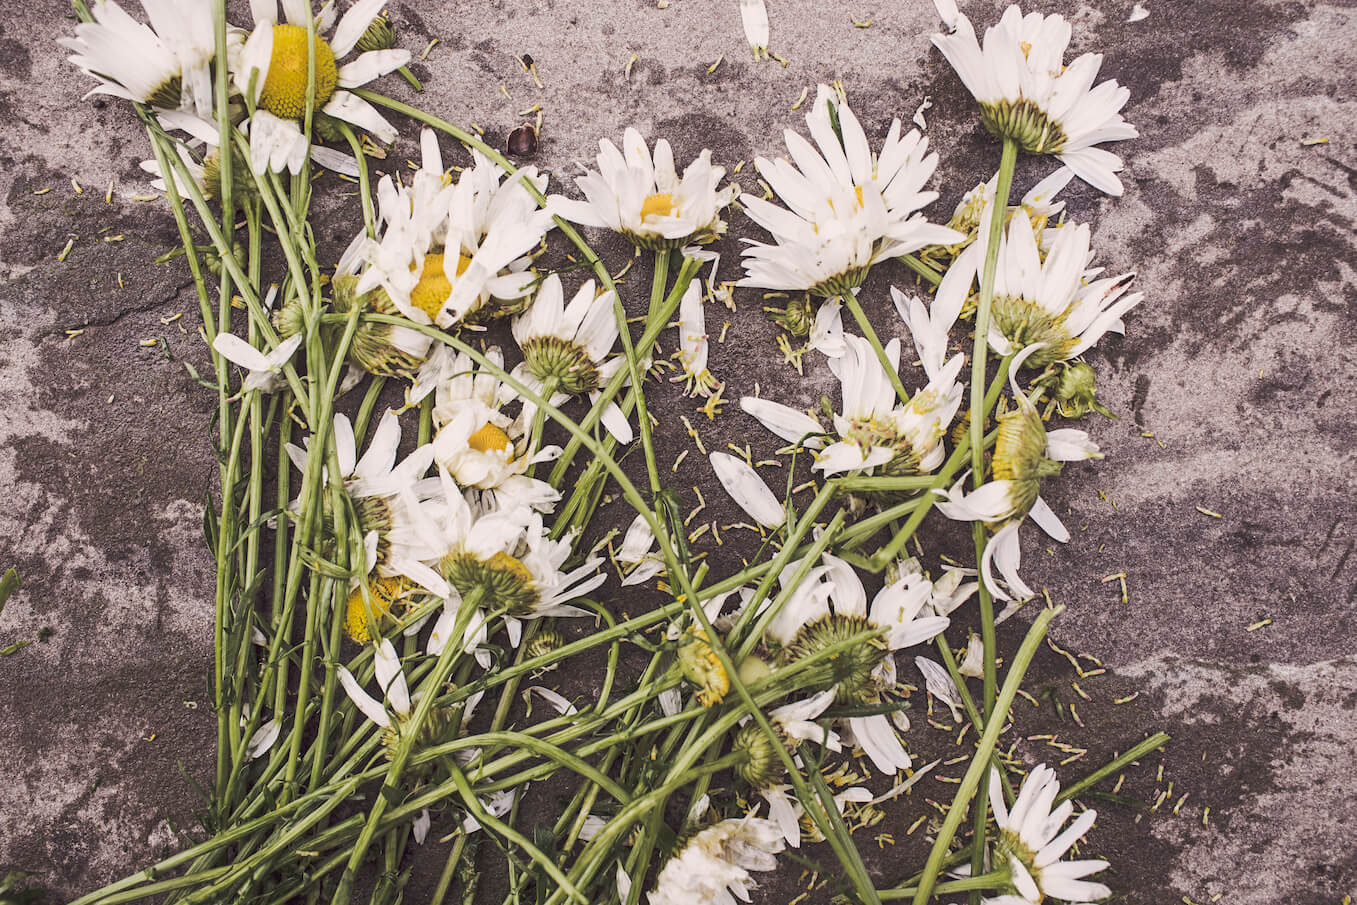 flowers-marguerites-destroyed-dead-2-2.jpg